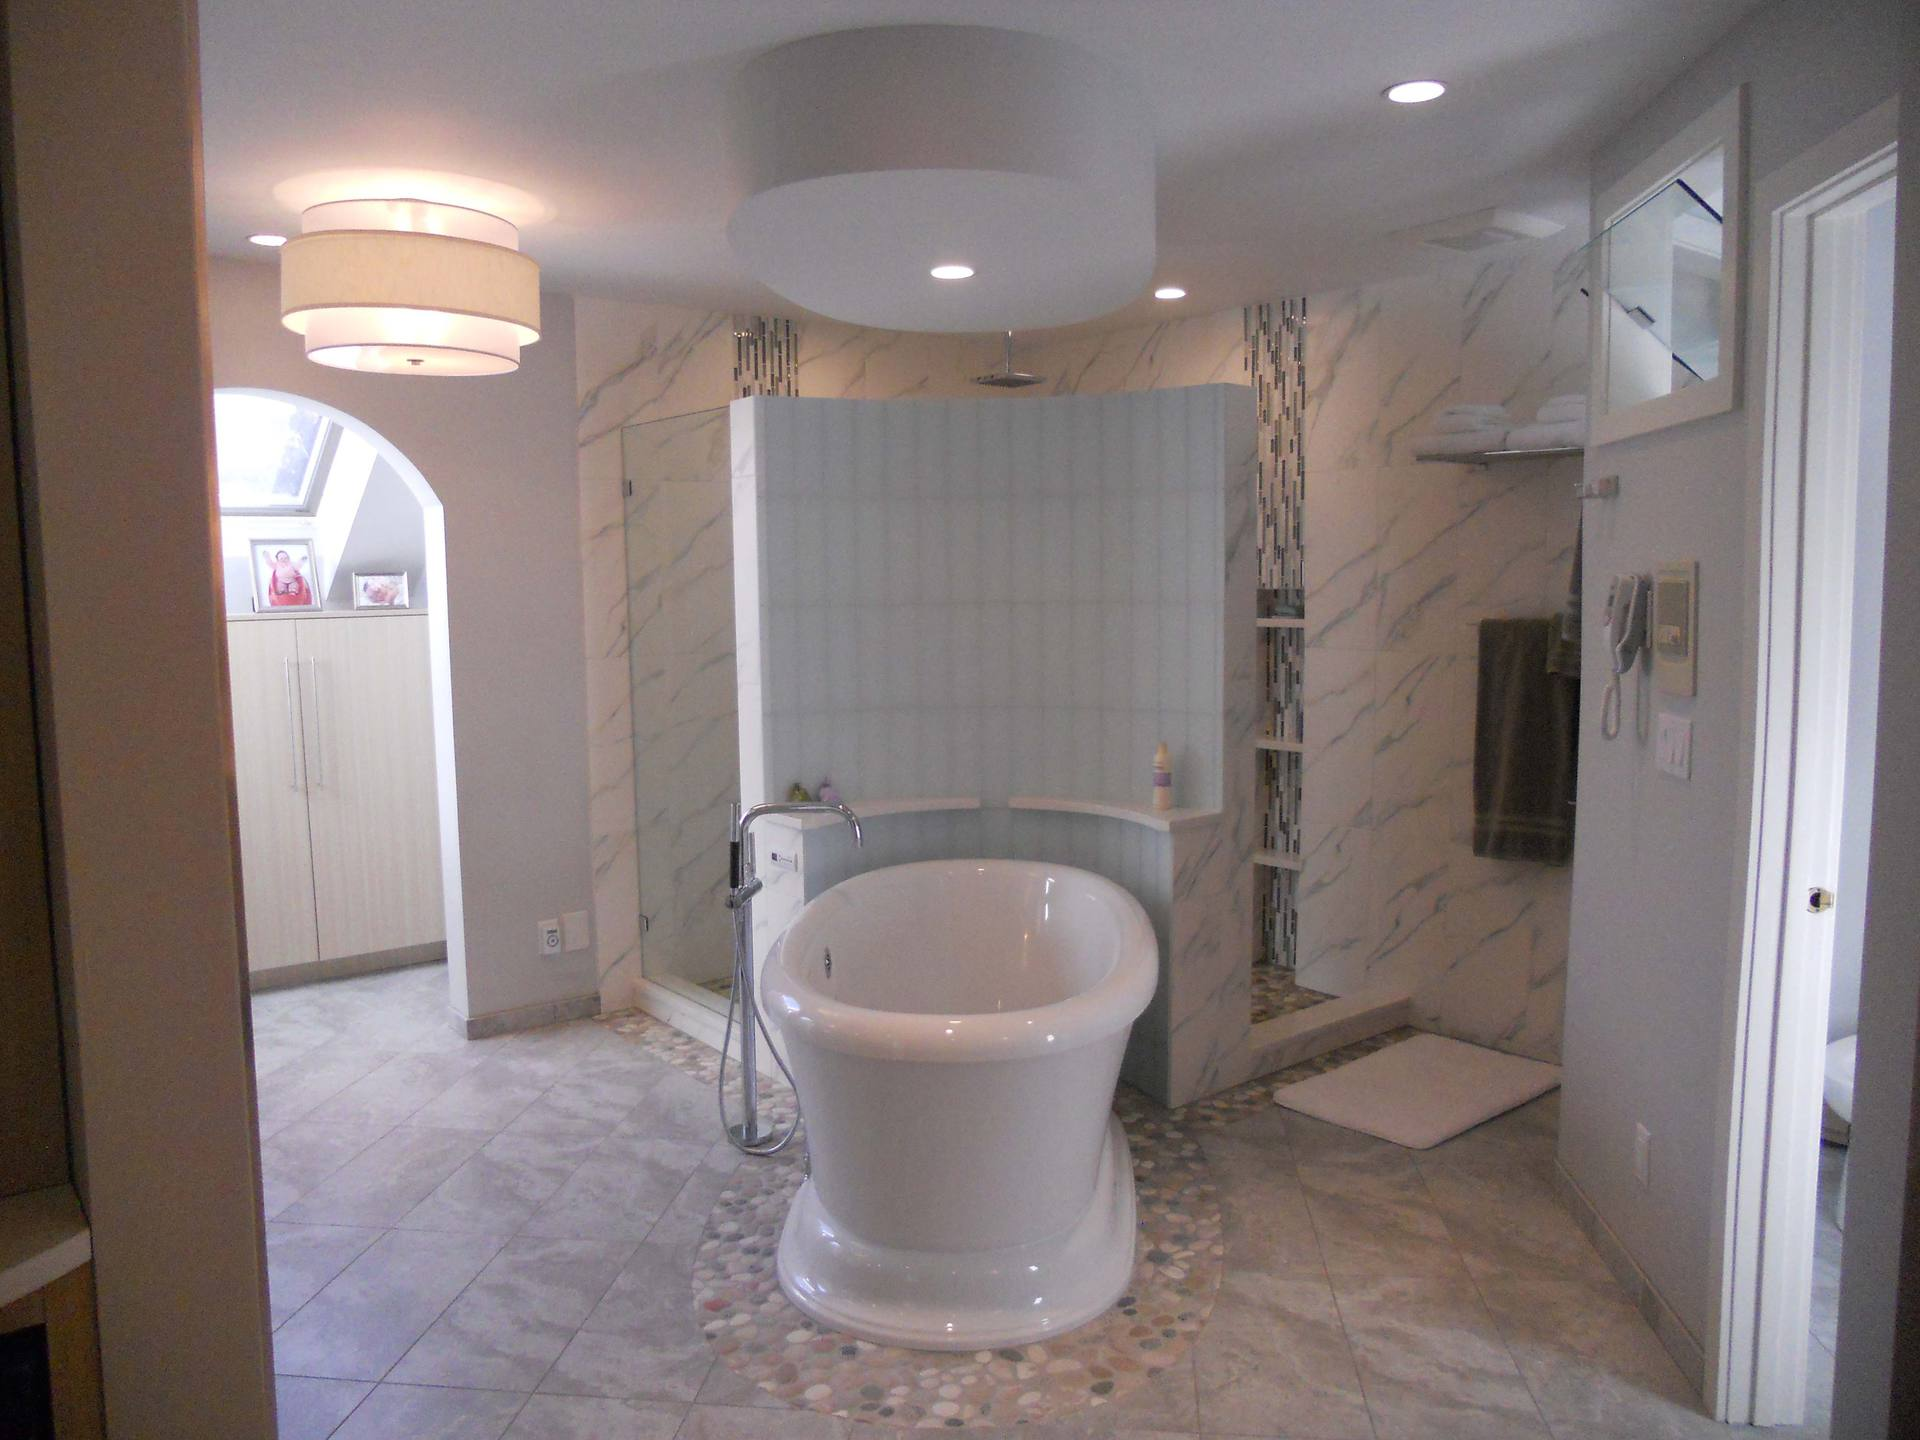 Rochester Bathroom Remodeling Team pares the Benefits